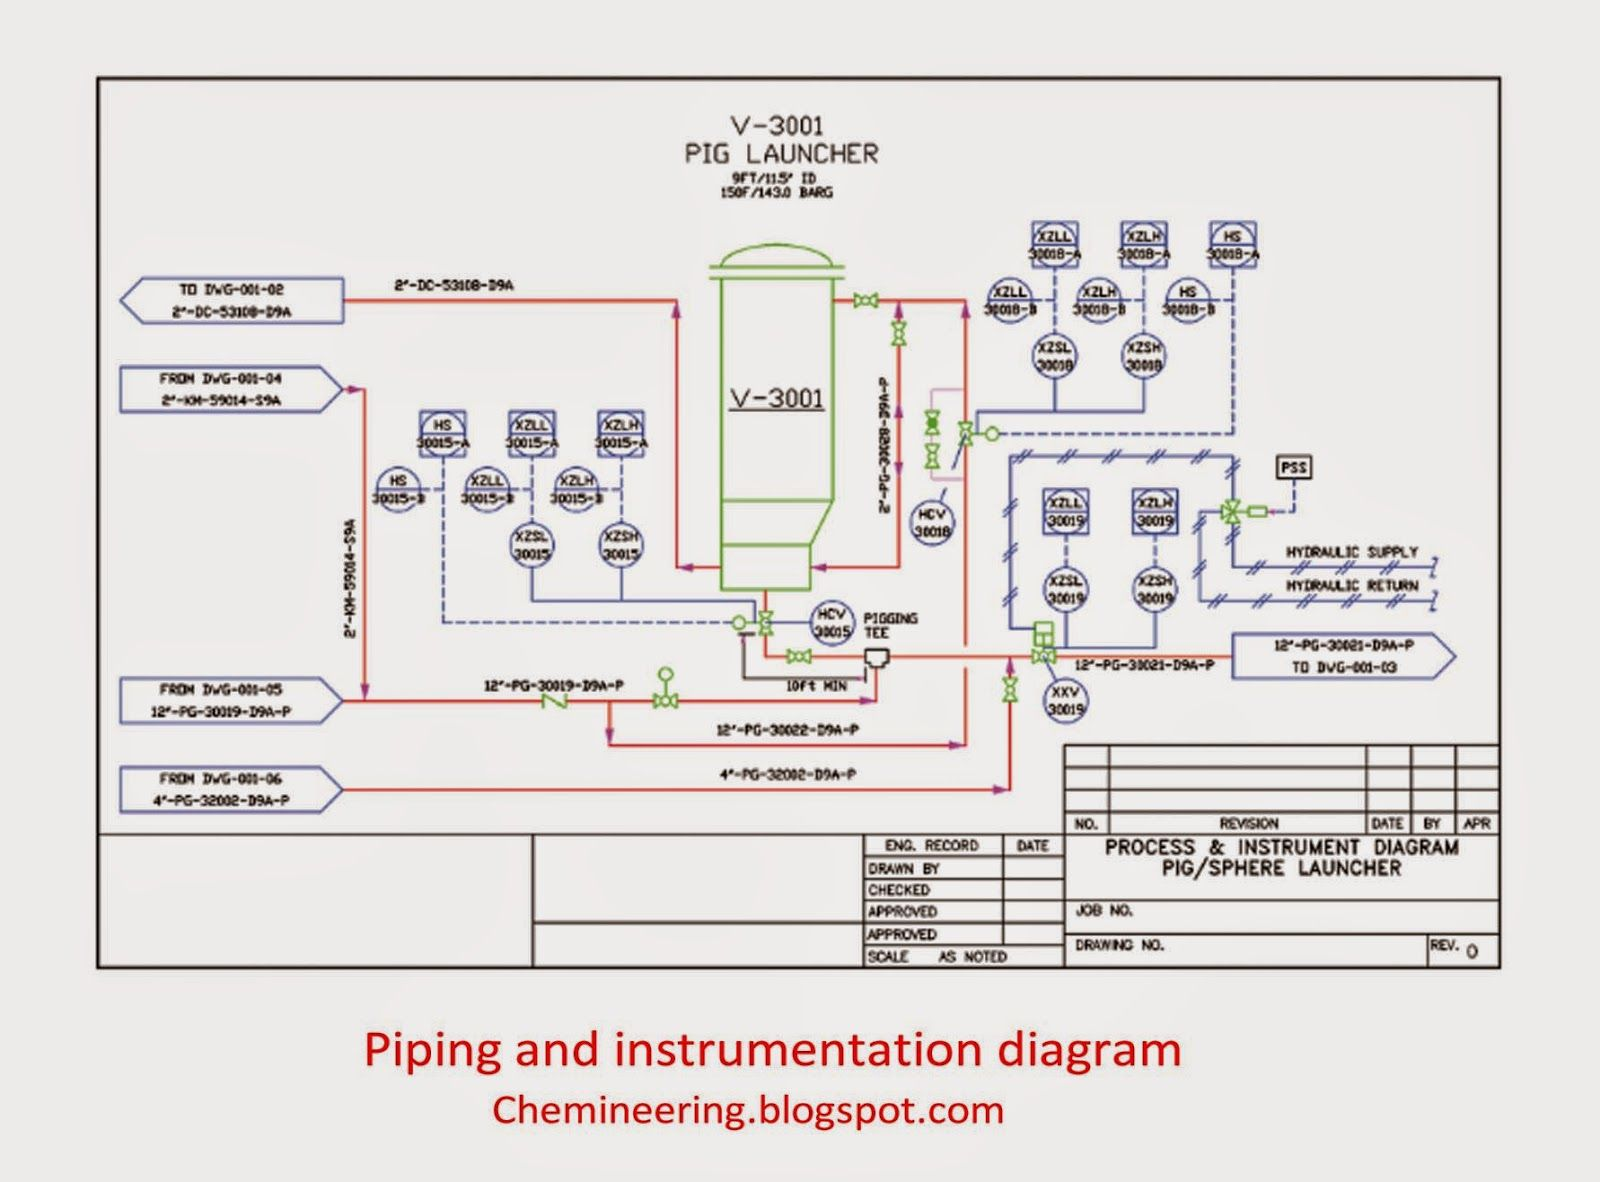 Chemical Engineering Drawing At Free For Personal Process Flow Diagram Using Autocad 1600x1182 Piping And Instrumentation By